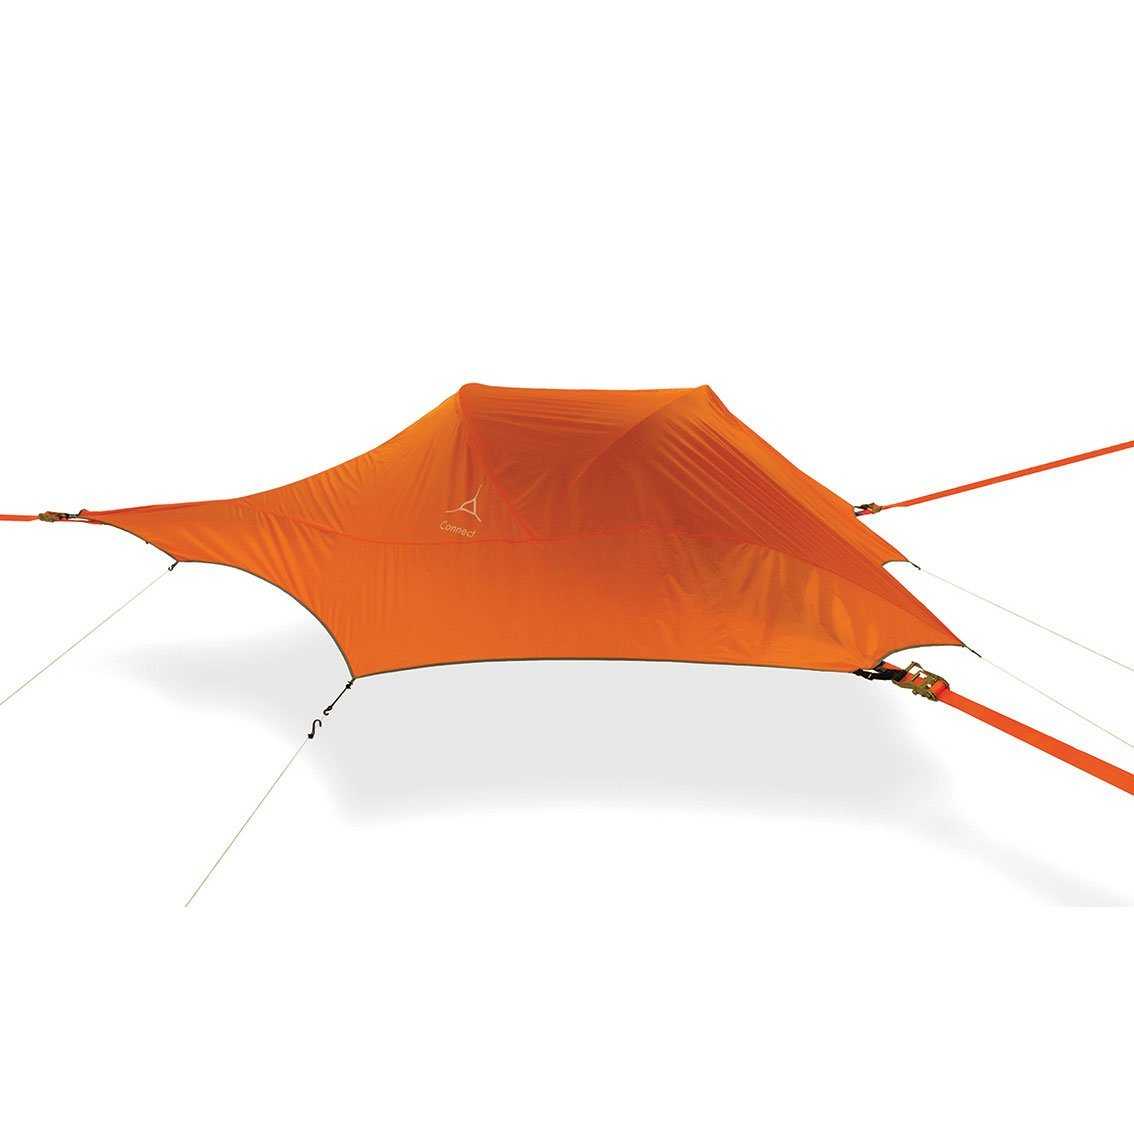 Tentsile | Connect Tree Tent | 2 Person Suspended Hammock Tent - Orange